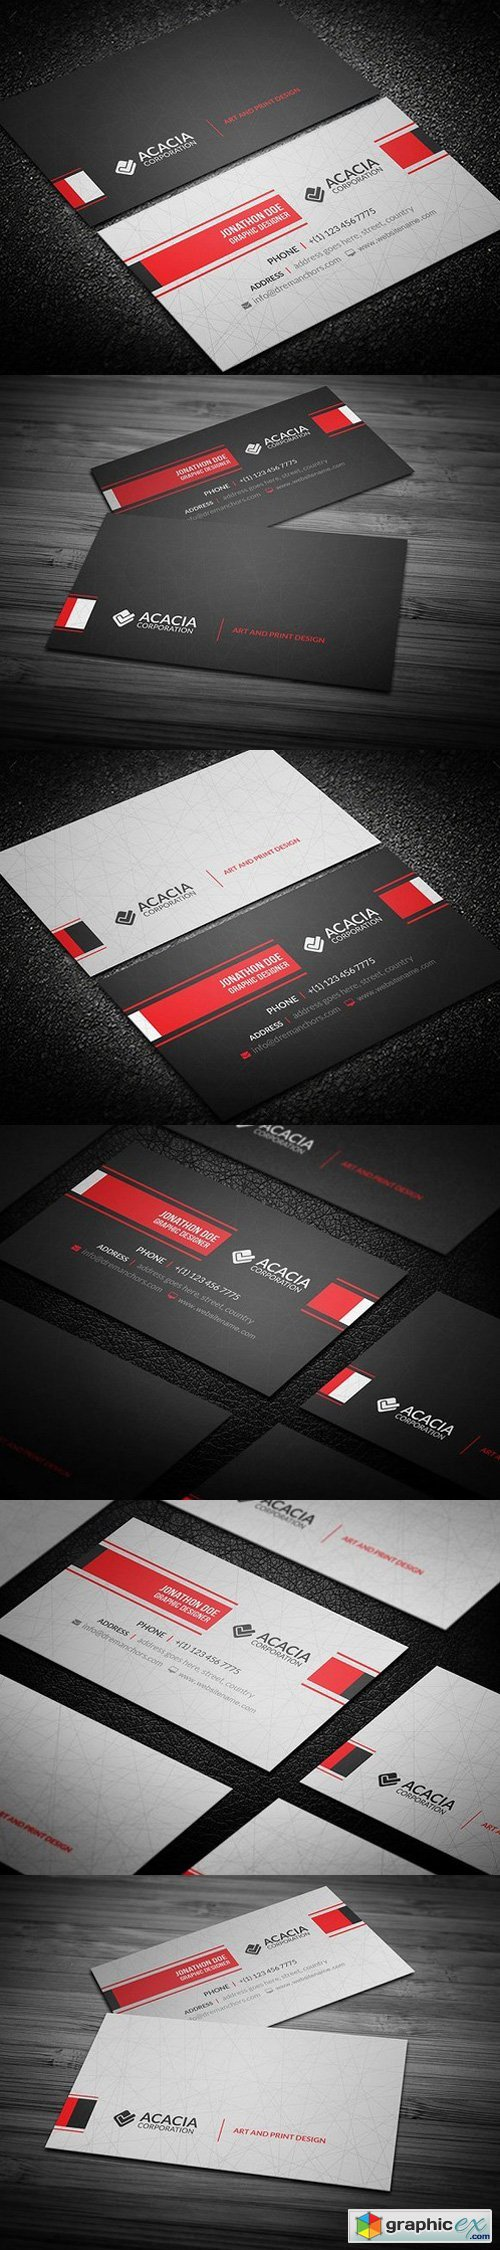 Business Card 950517